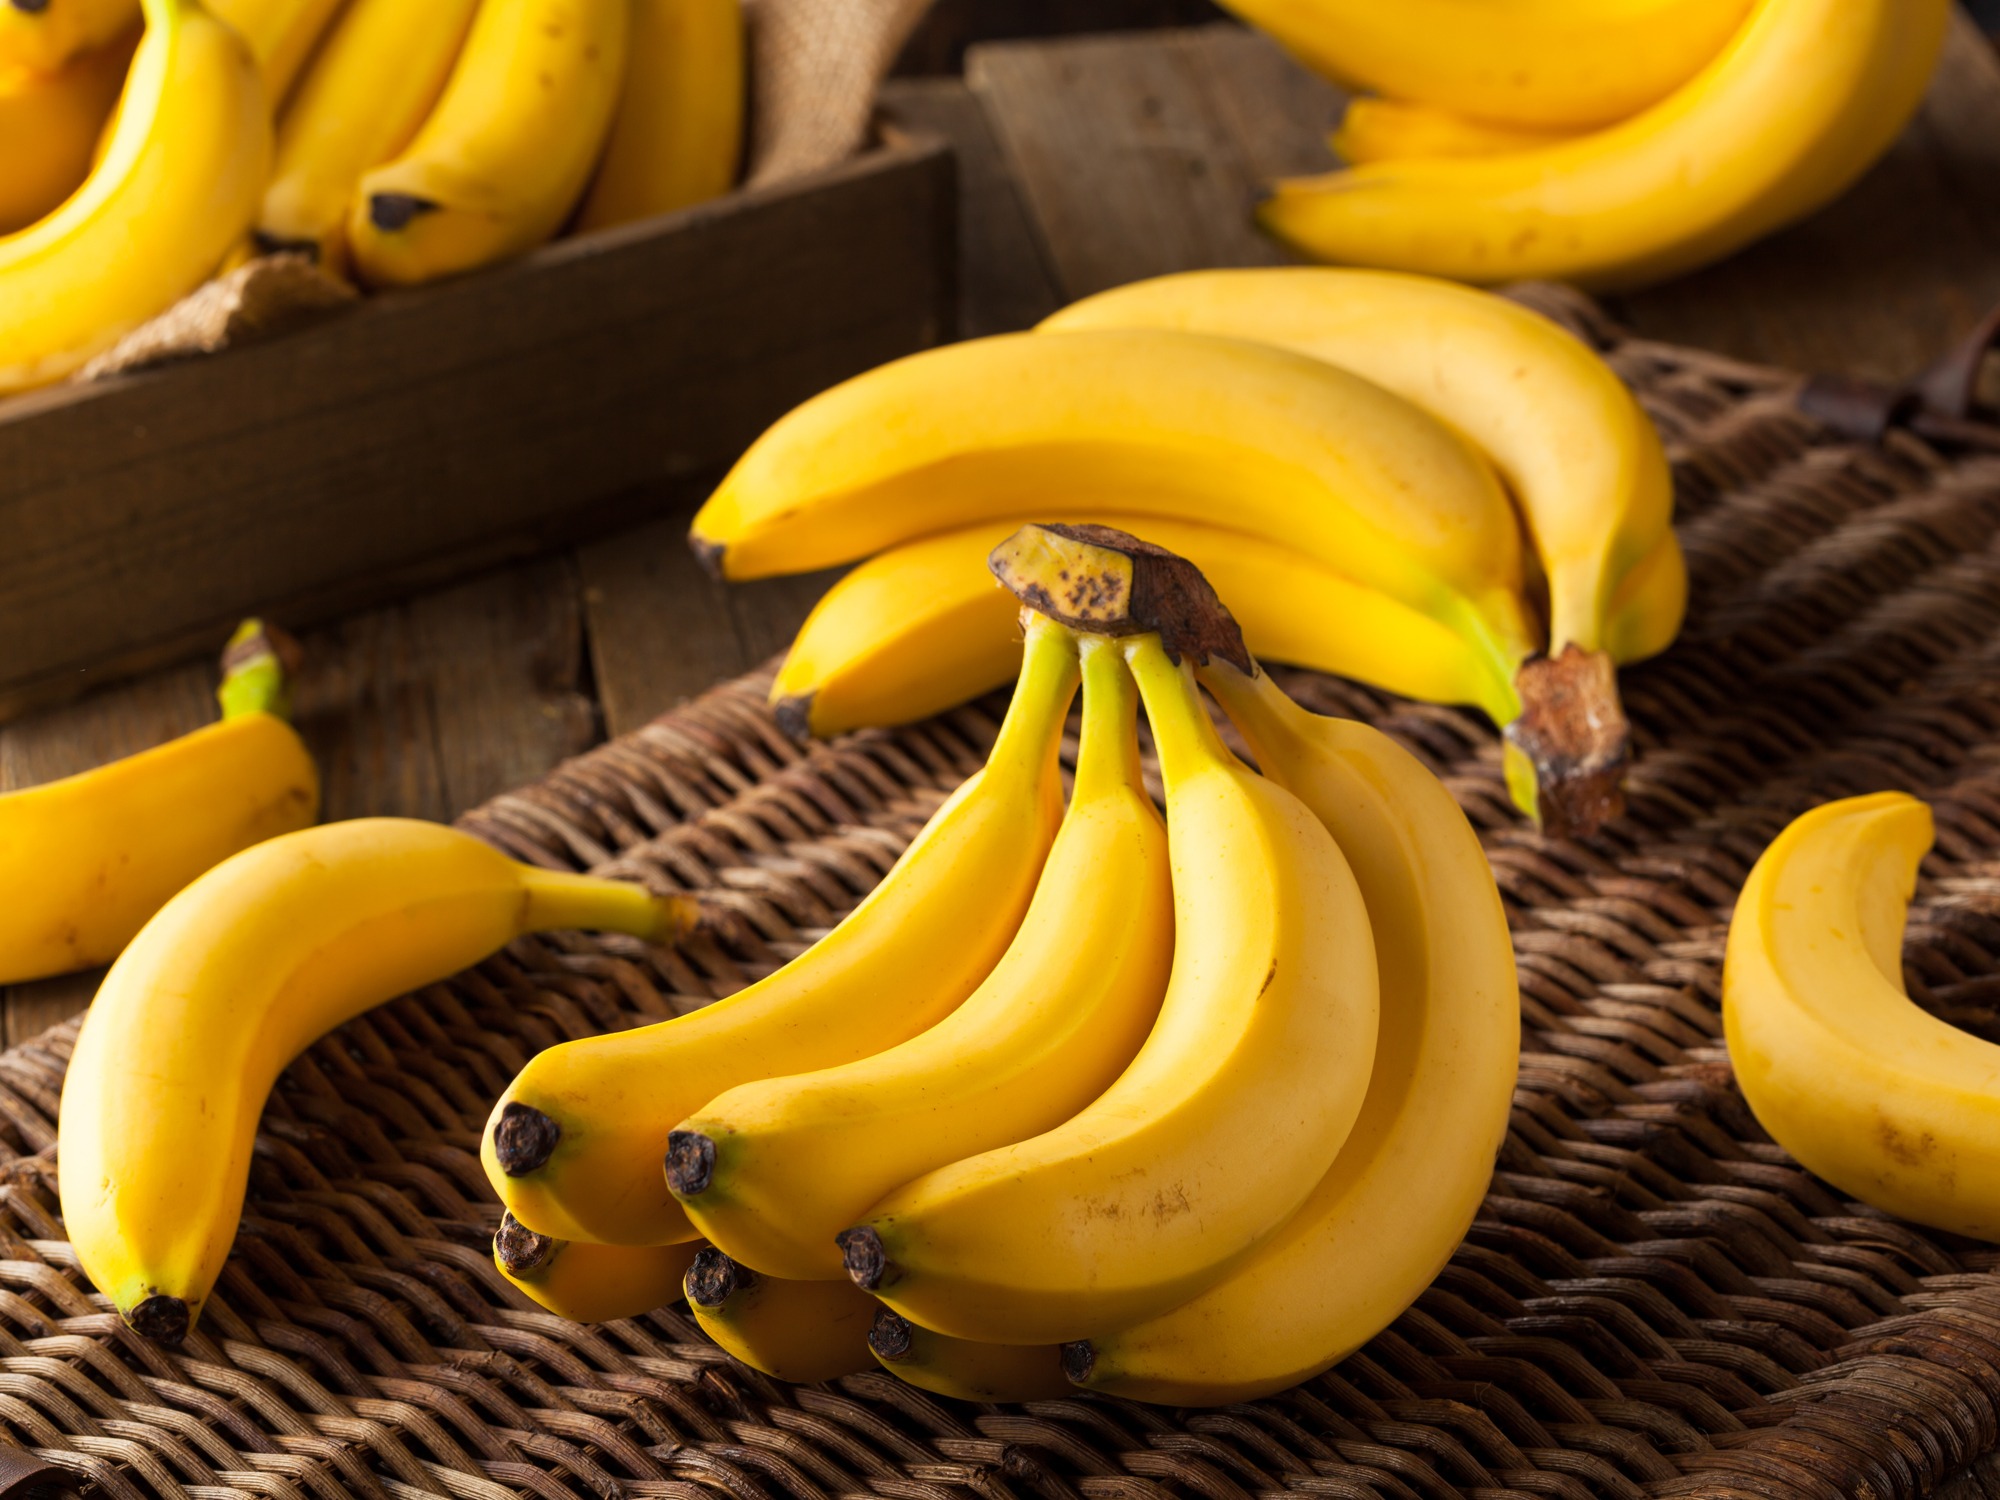 5 ways eating a banana could save your life